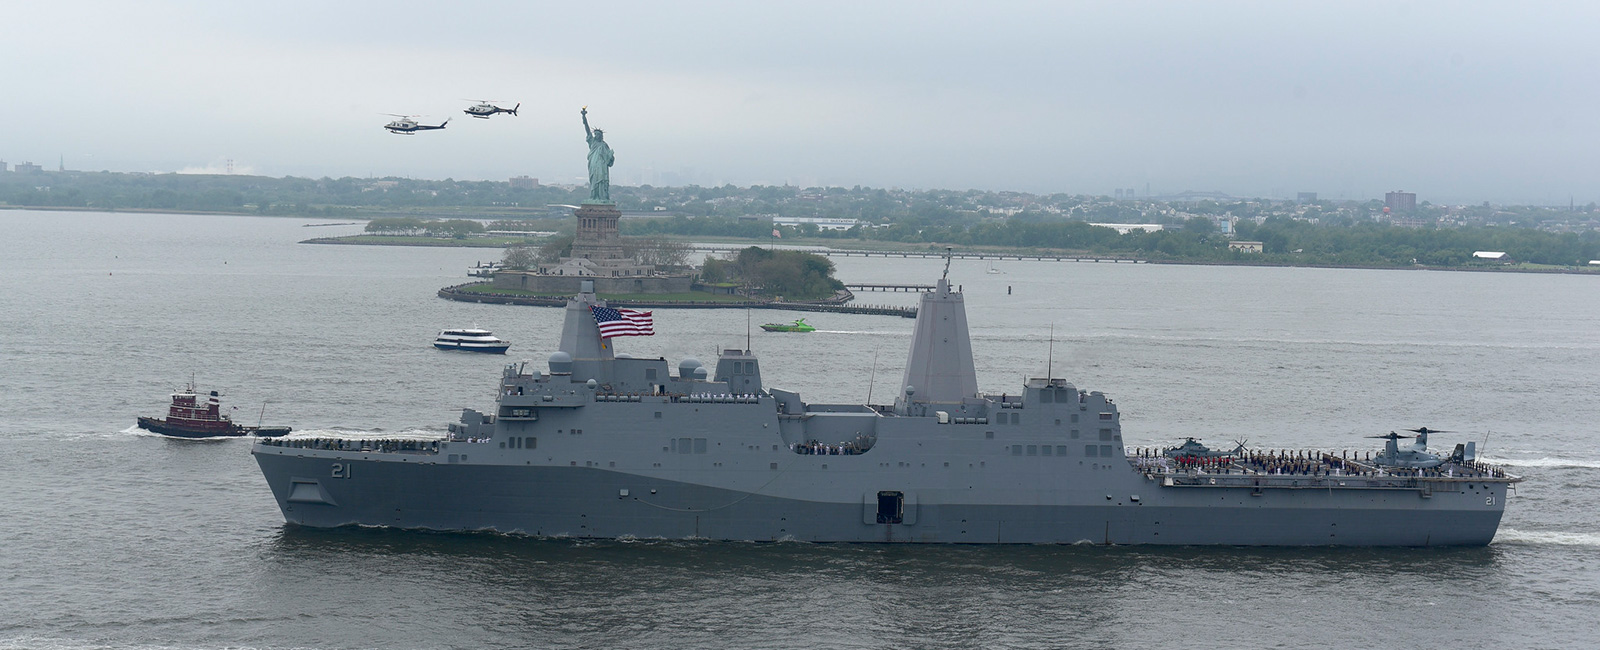 The amphibious transport dock ship USS New York (LPD 21) departs New York Harbor at the conclusion of Fleet Week New York 2019. Fleet Week New York, now in its 31st year, is the city's time-honored celebration of the sea services.